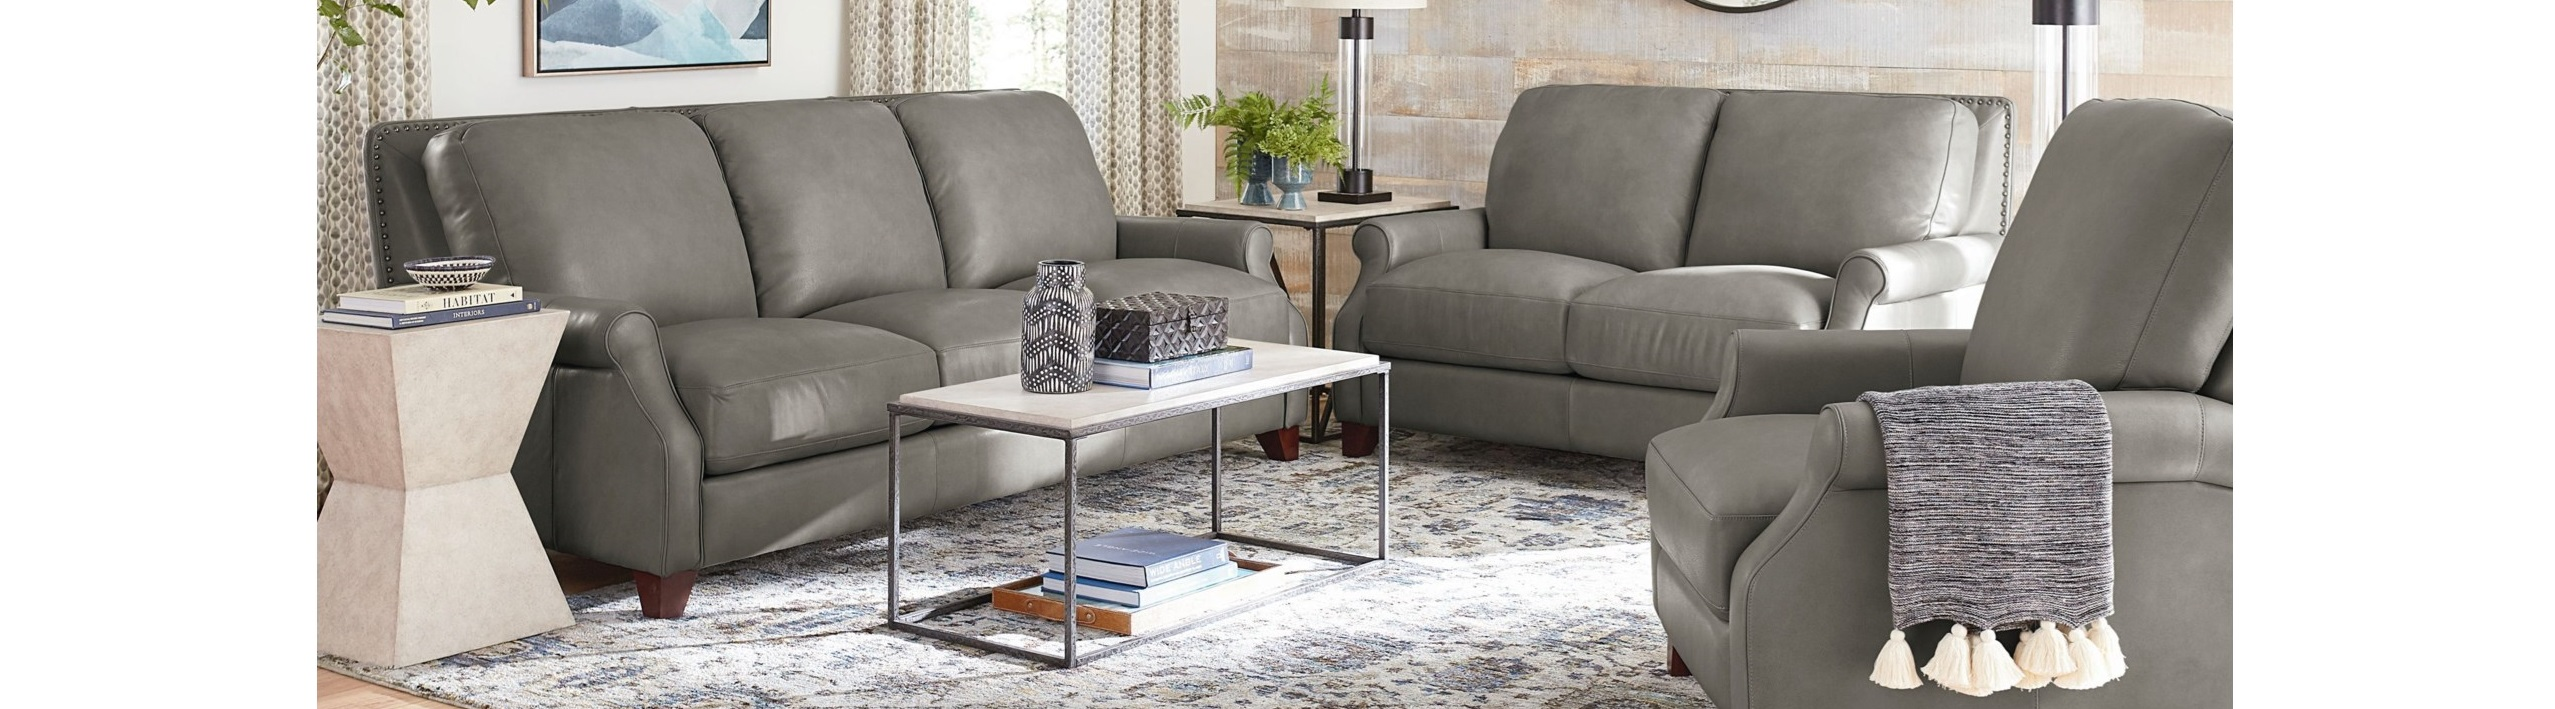 Crowley Furniture & Mattress reviews | Accessories at 6821 West 135th Street - Overland Park KS